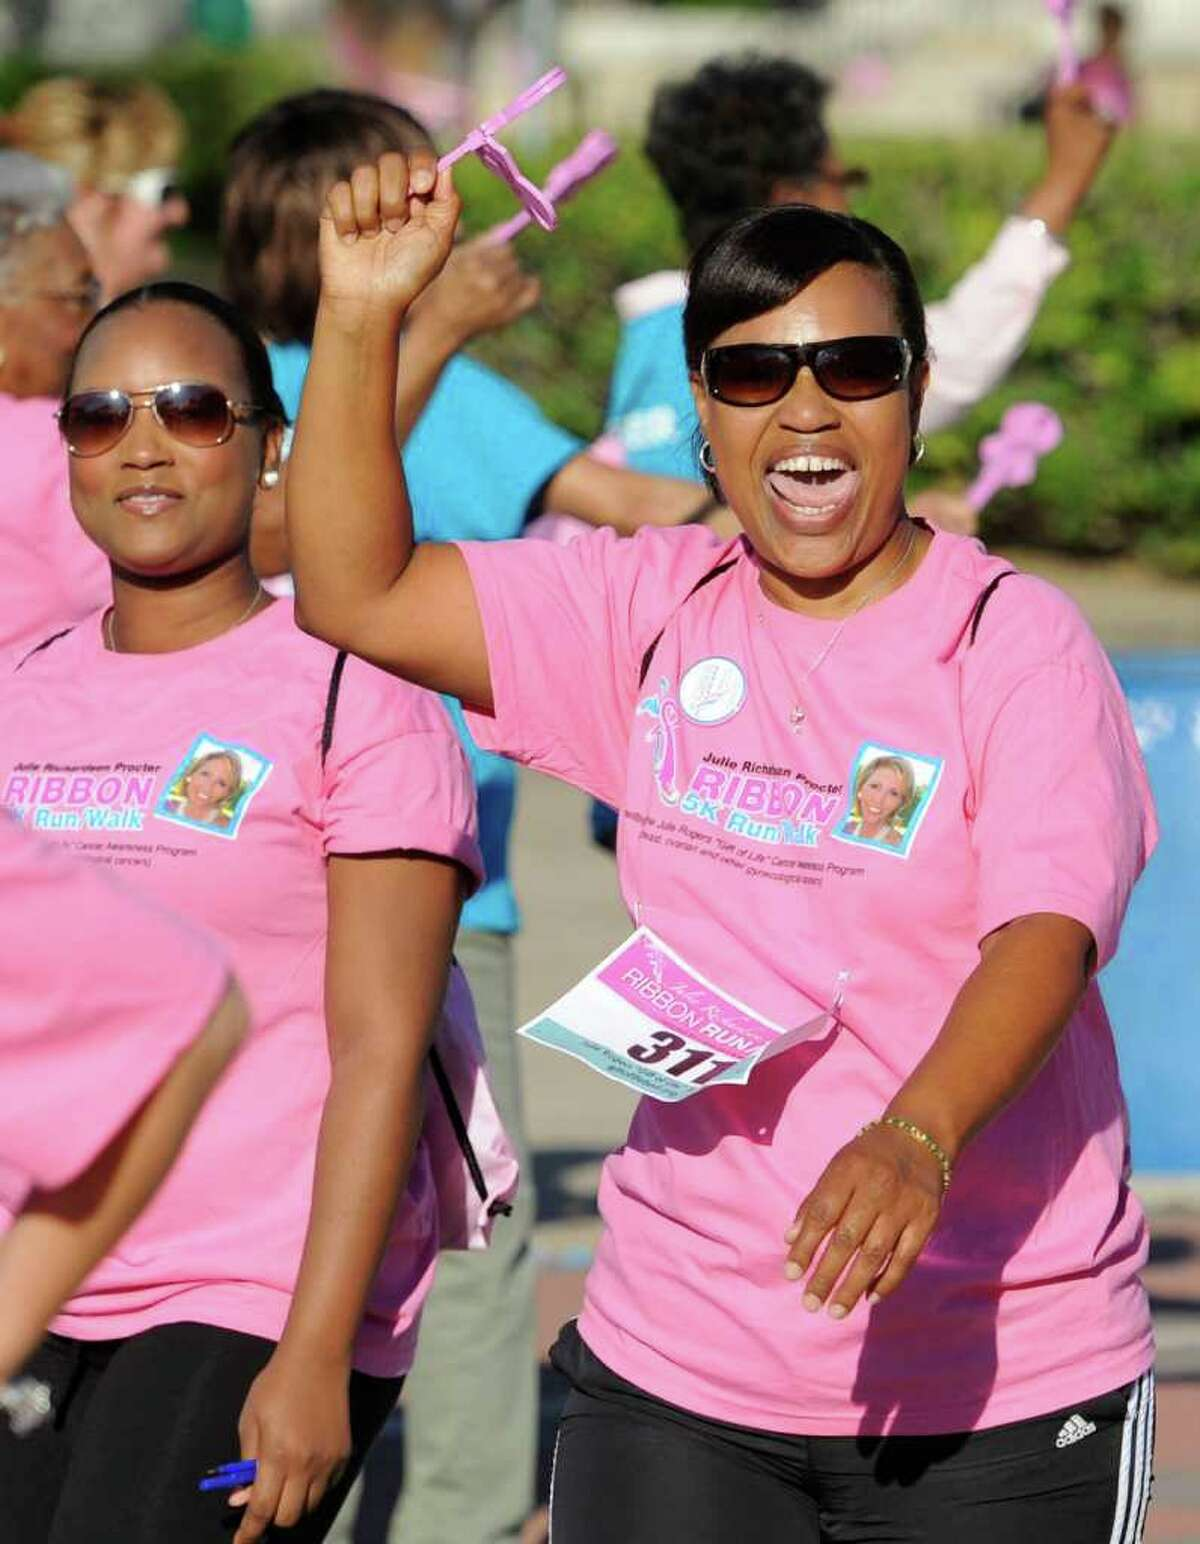 Jubilant walkers approach the finish line on Main Street in downtown Beaumont during the Julie Richardson Procter 5K Ribbon Run/Walk on Saturday, October 1, 2011. Valentino Mauricio/The Enterprise